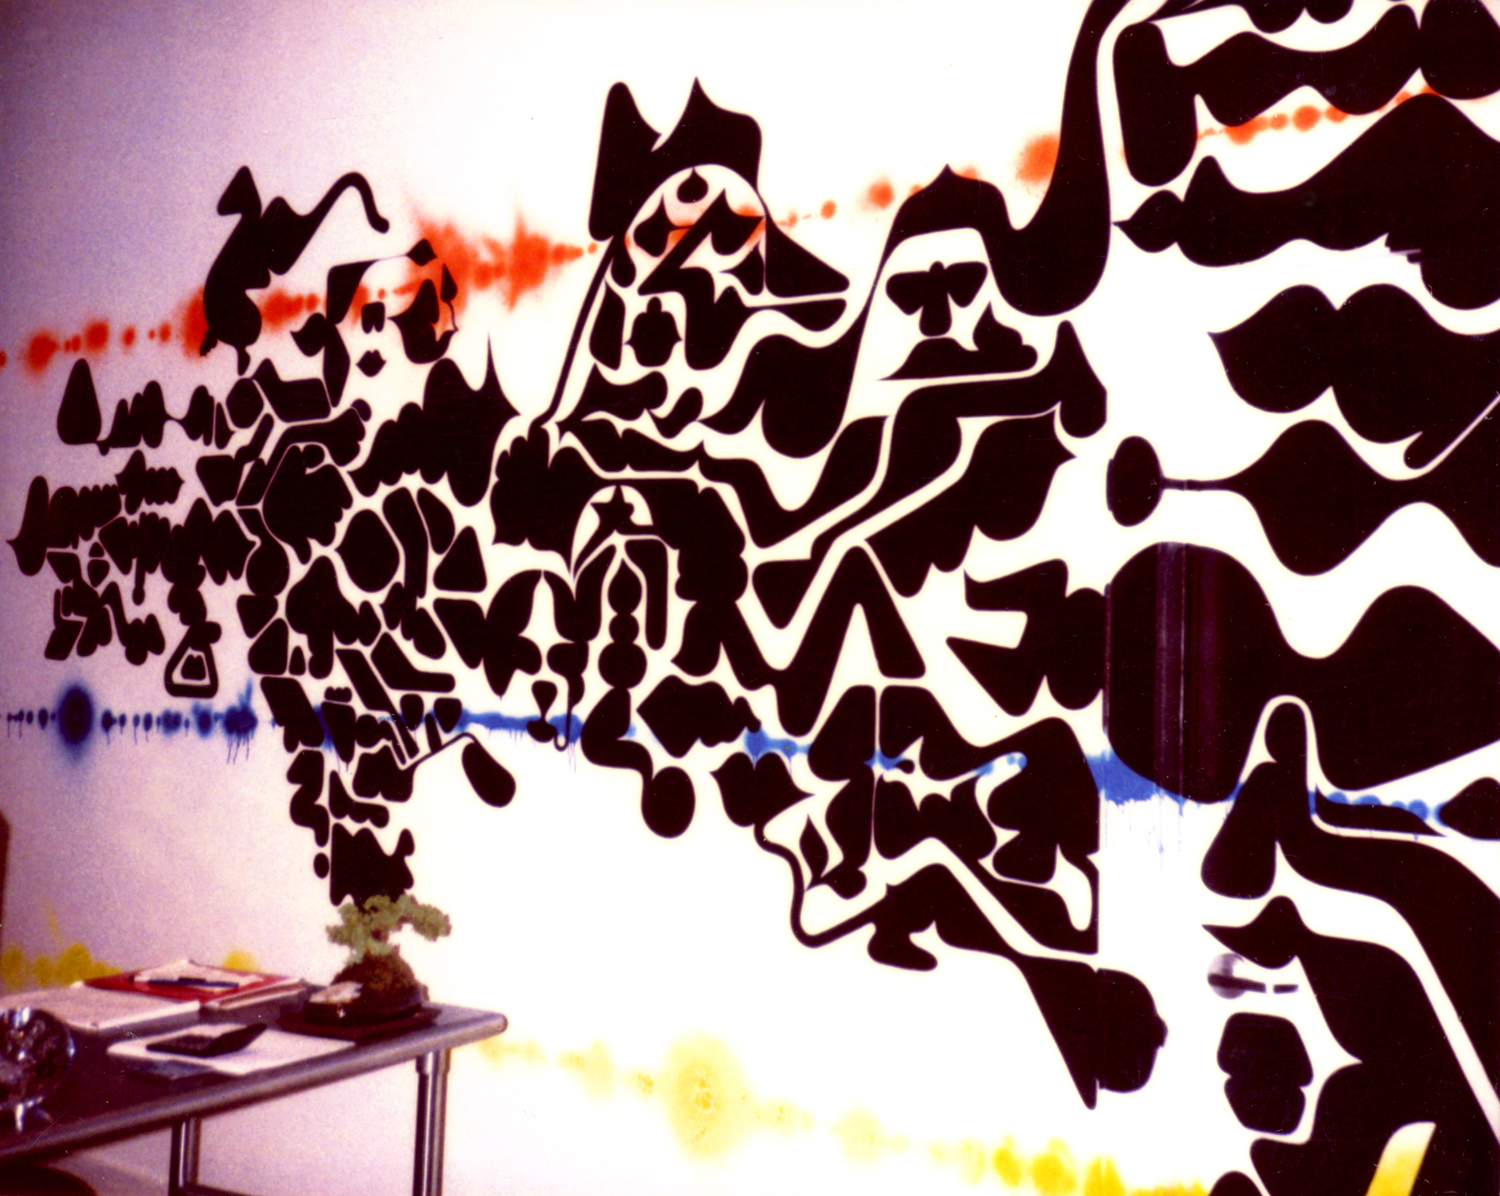 installation view, mural commission for  PMI offices  Soho, NY, 1999